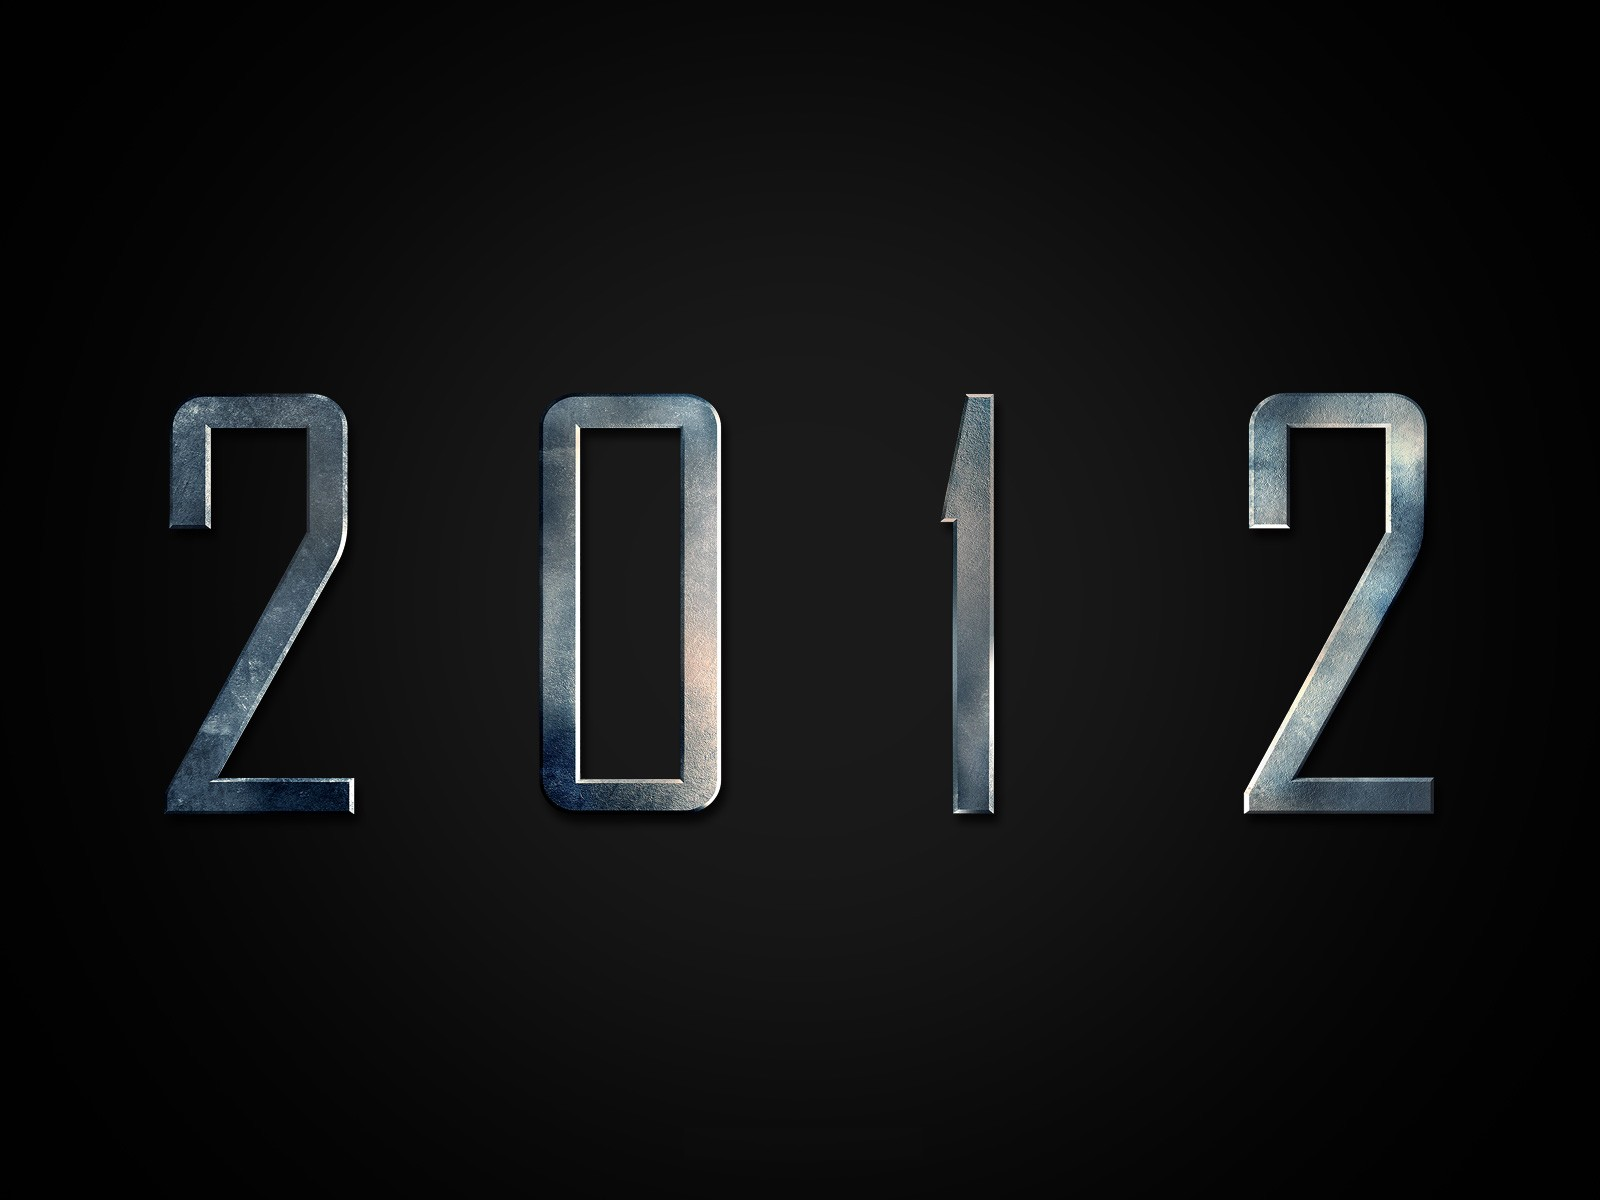 2012 wallpaper HD